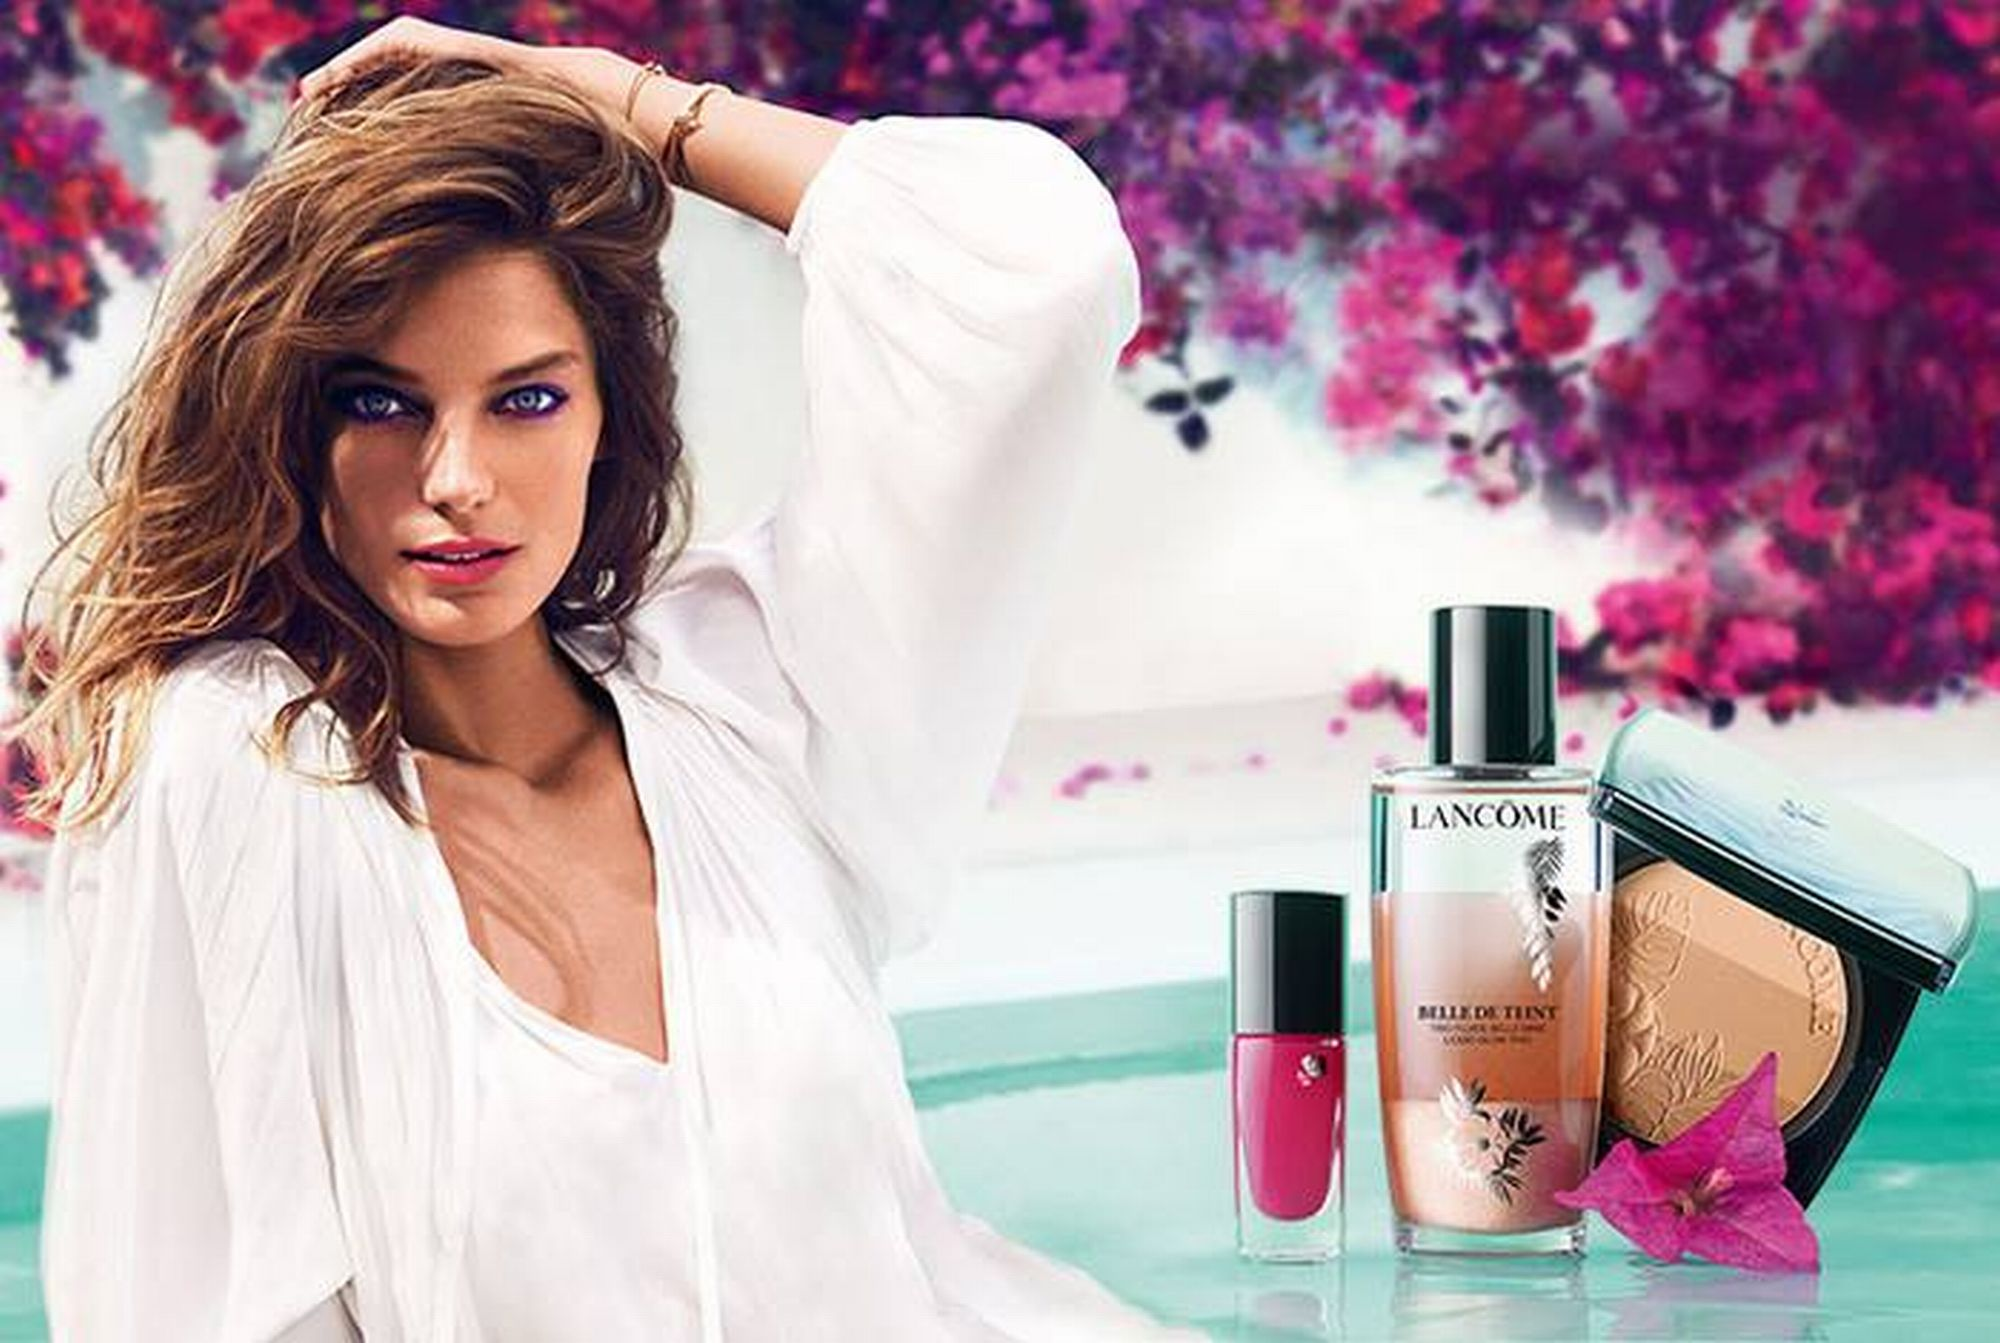 LANCOME Summer Bliss Makeup Collection for Summer 2016 1